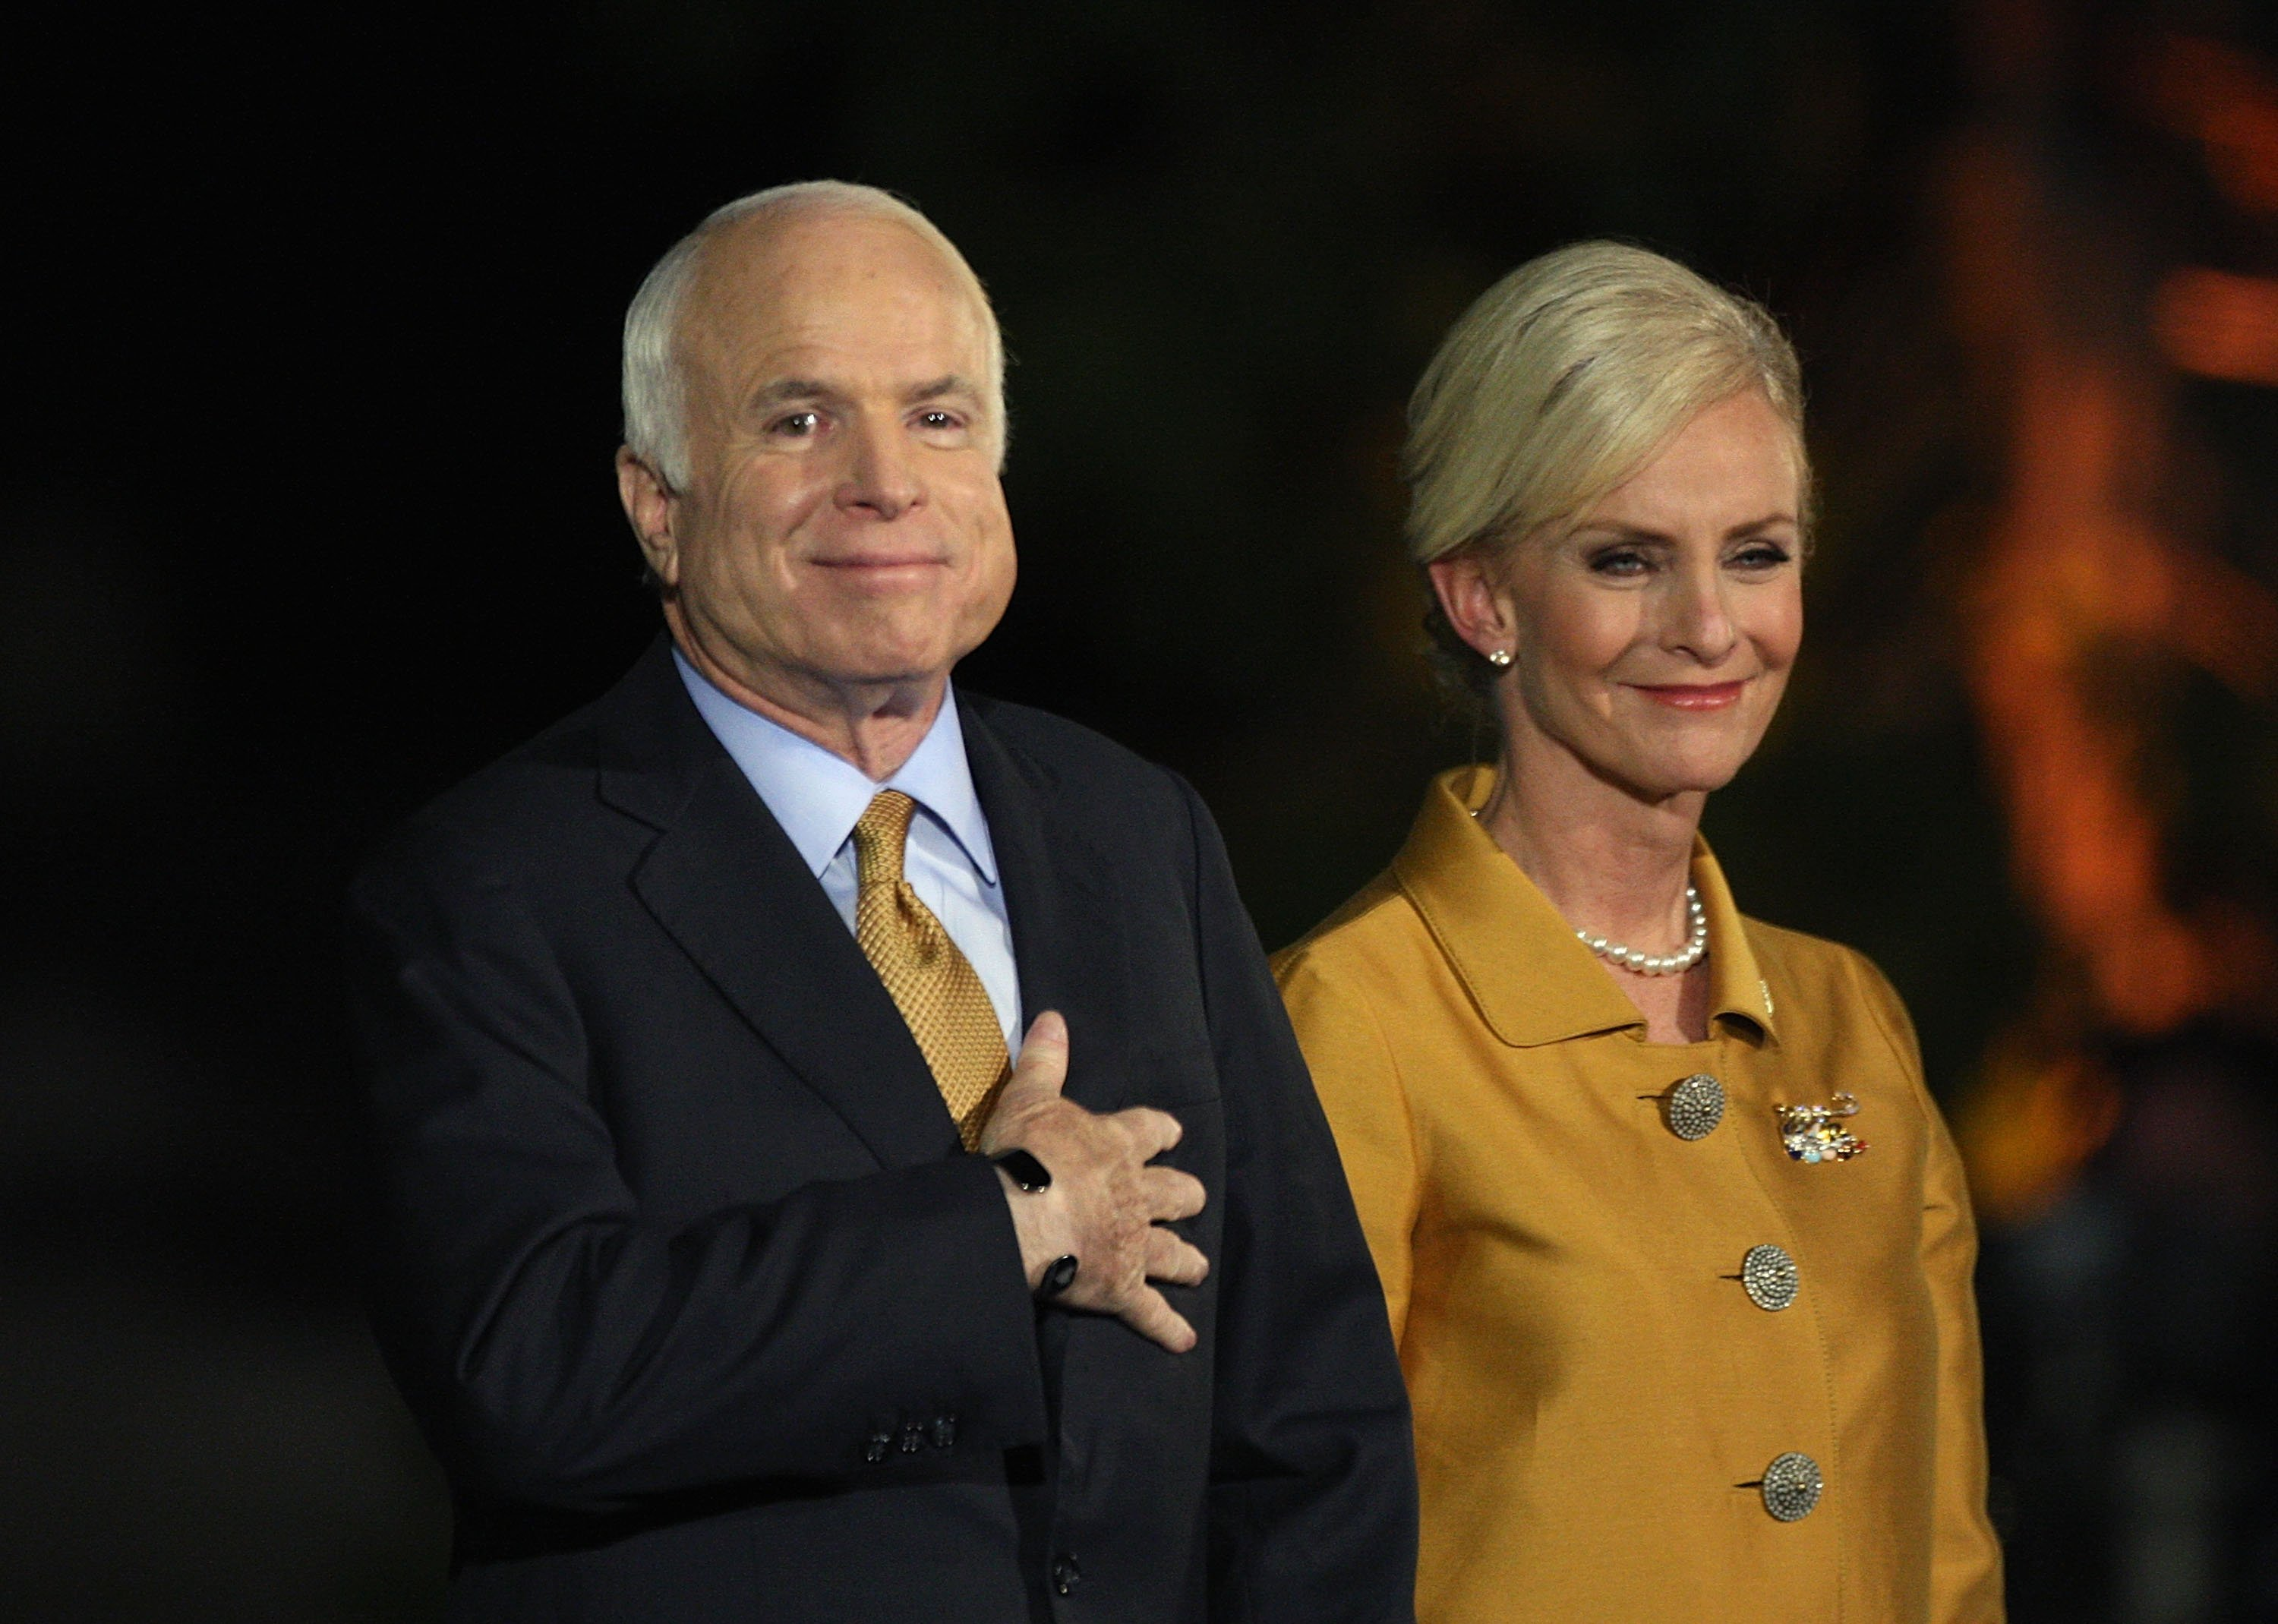 Late U.S. Sen. John McCain concedes victory on stage with his wife Cindy McCain during the election night rally in 2008. | Source: Getty Images